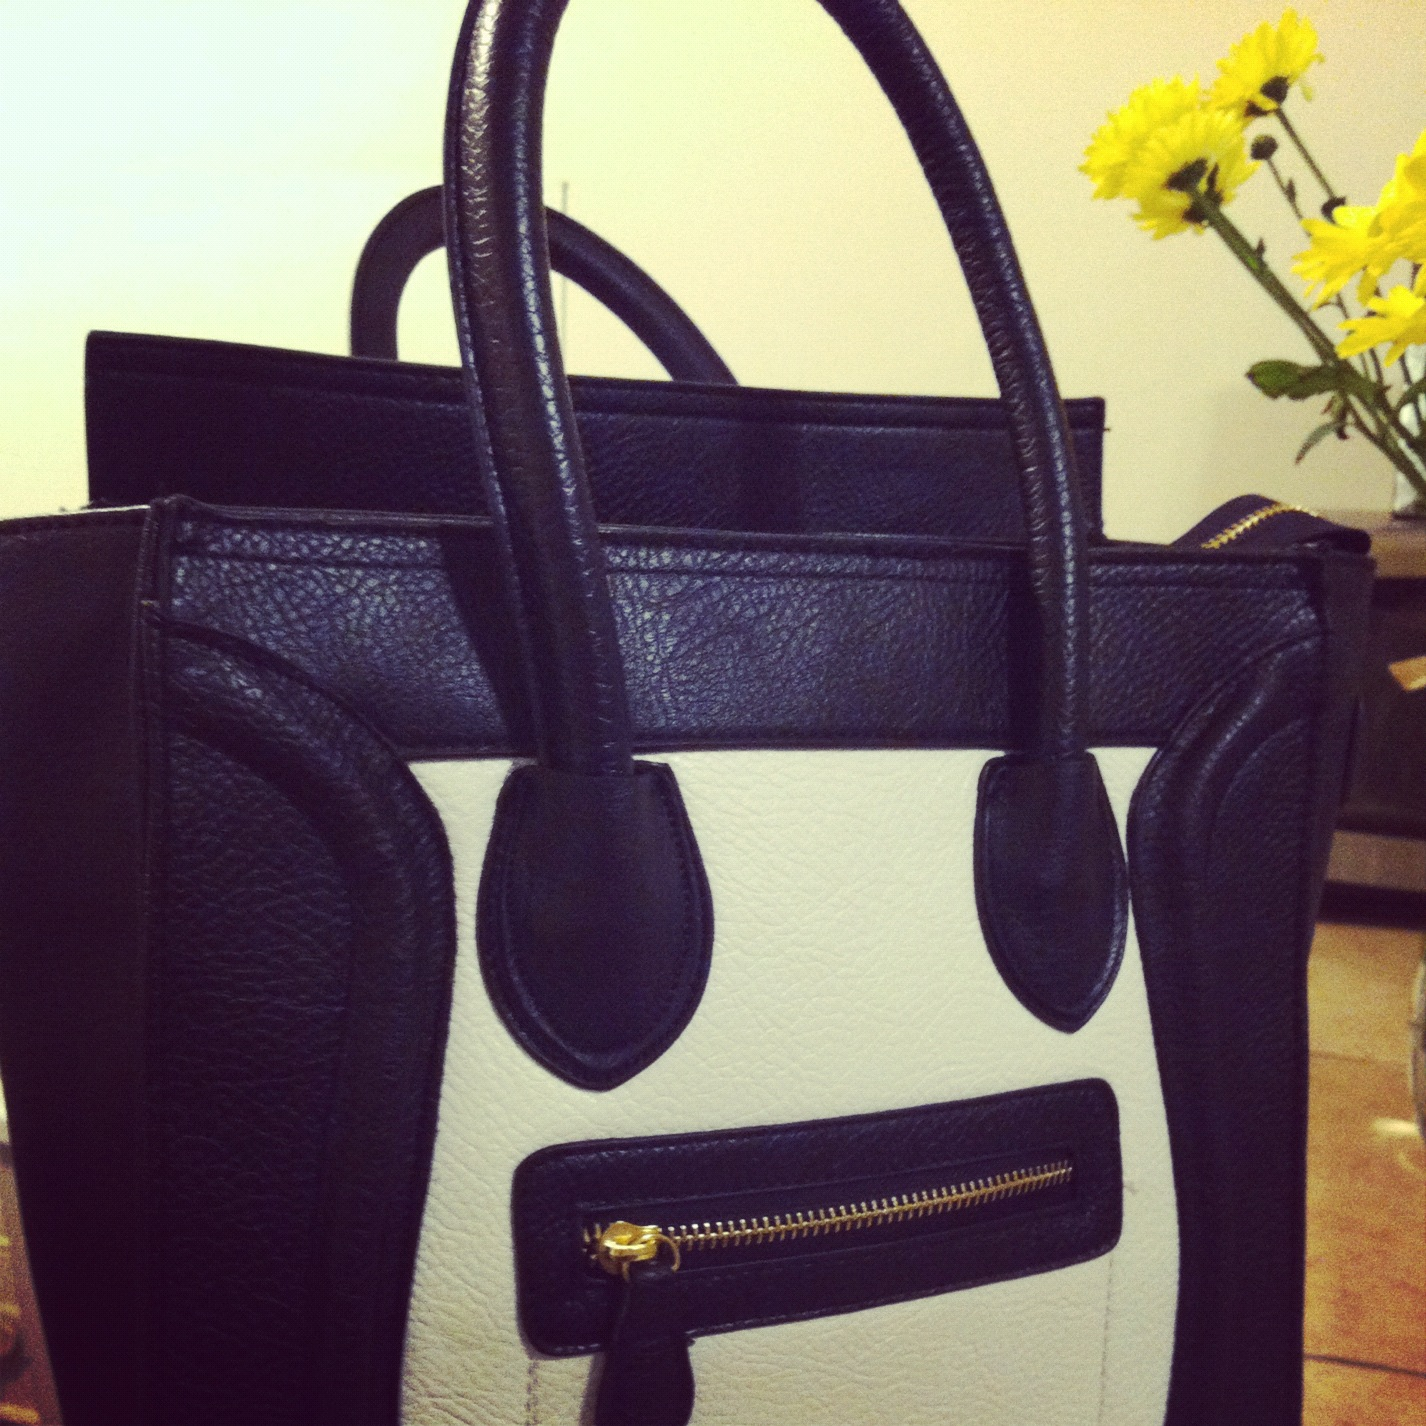 celine bag mini luggage price - January | 2012 | lucky girl finds